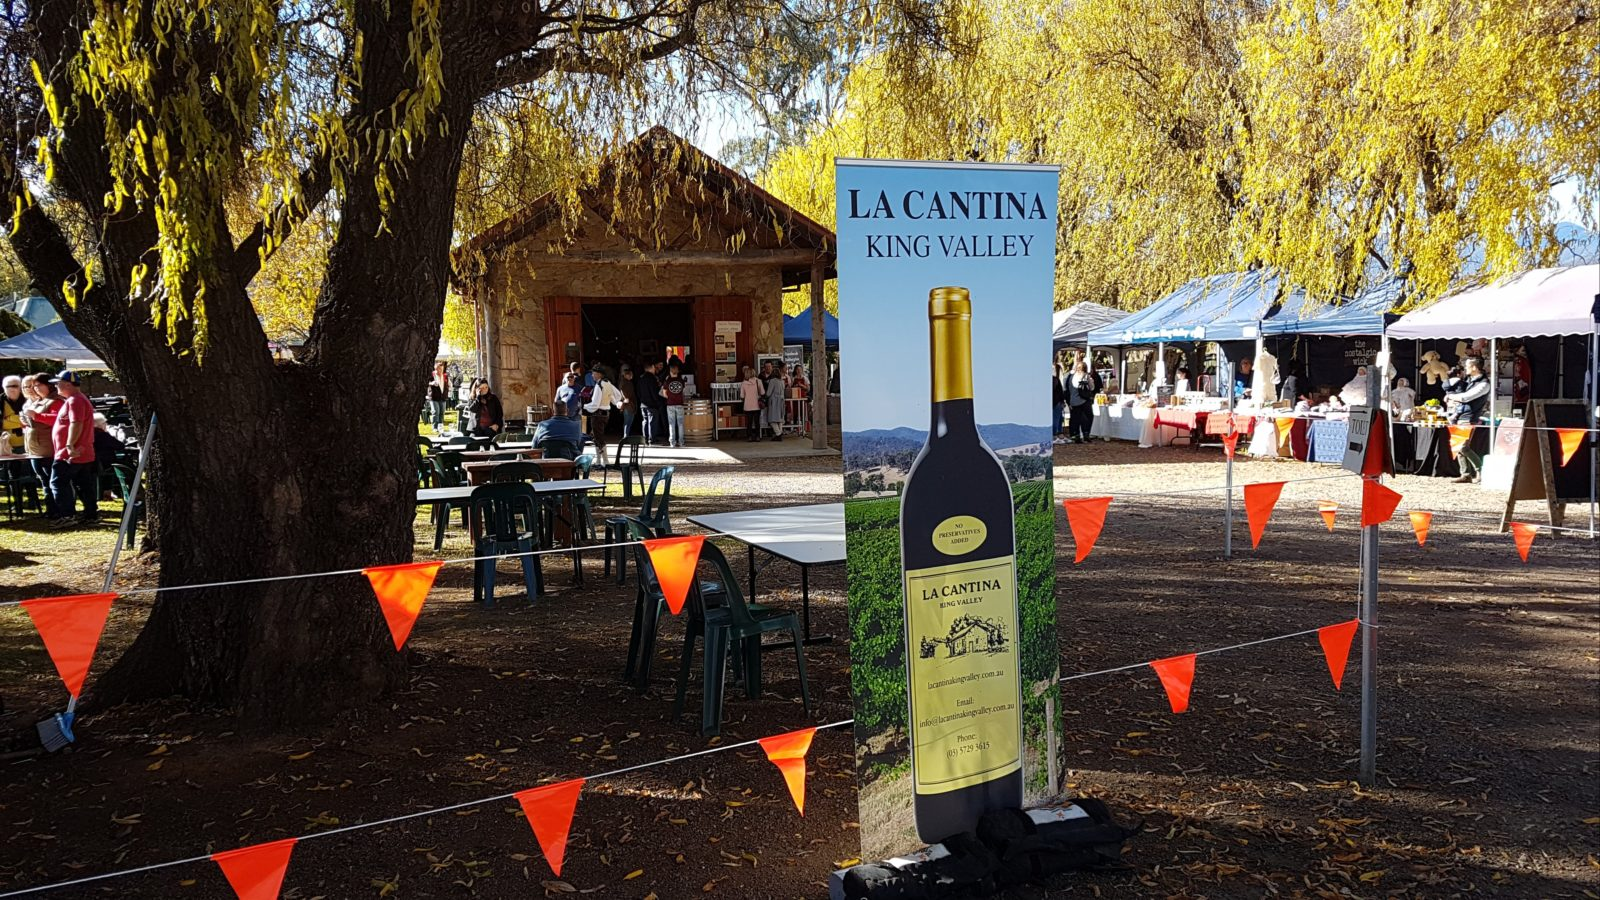 Fit for a King Weekend, King Valley at La Cantina Winery